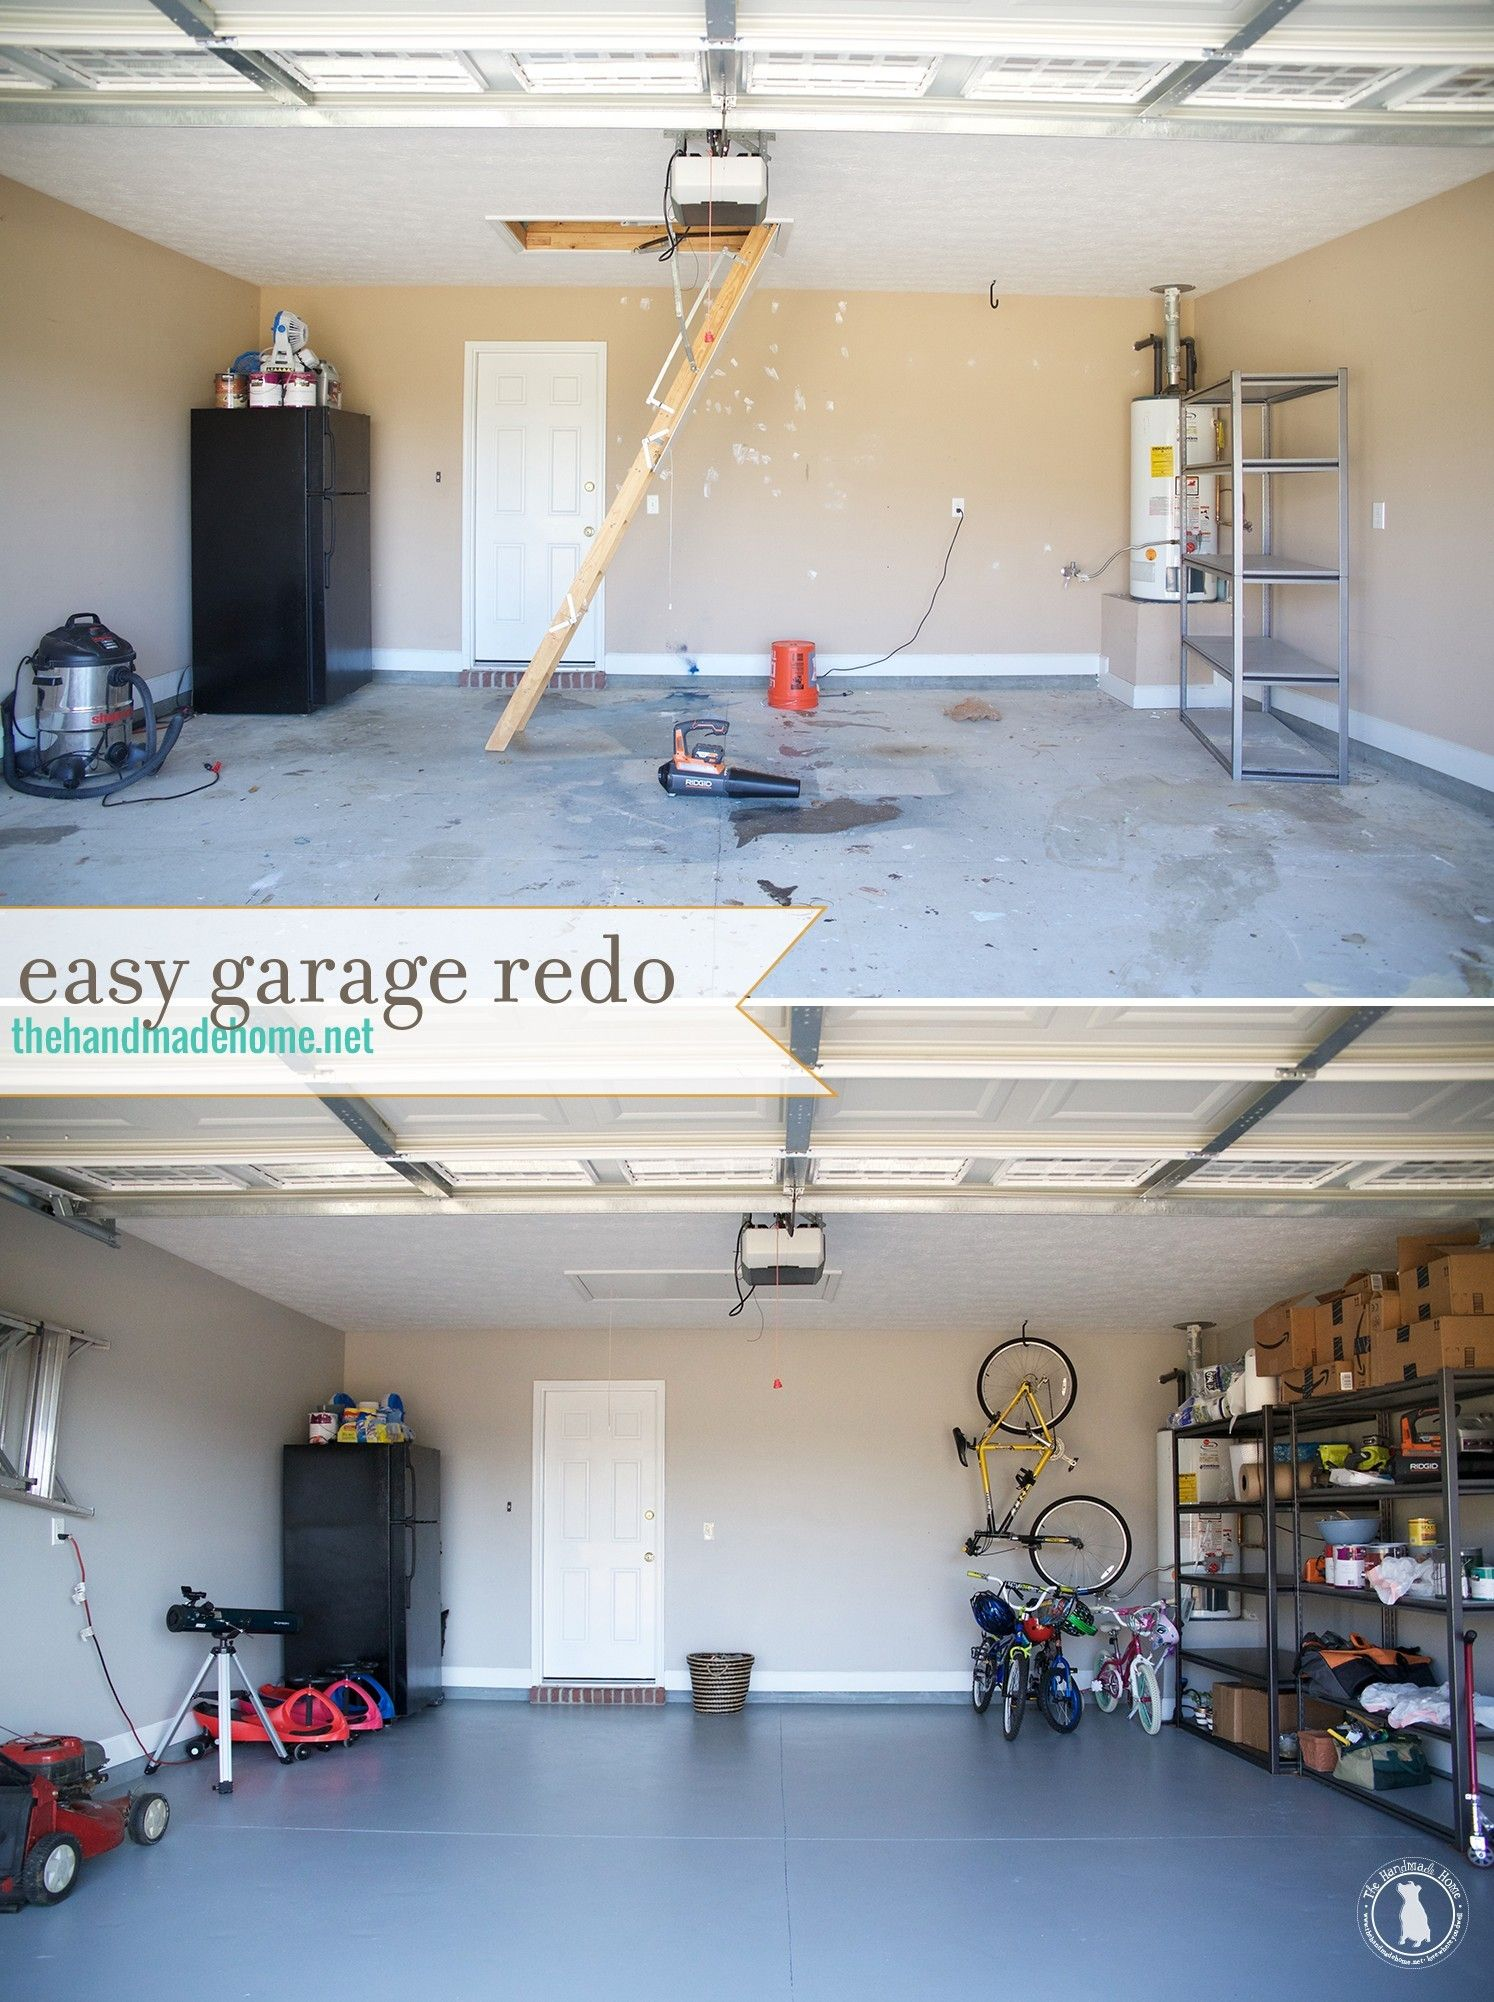 How to refinish your garage floor the spray paint grenade - How to spray paint your house exterior ...